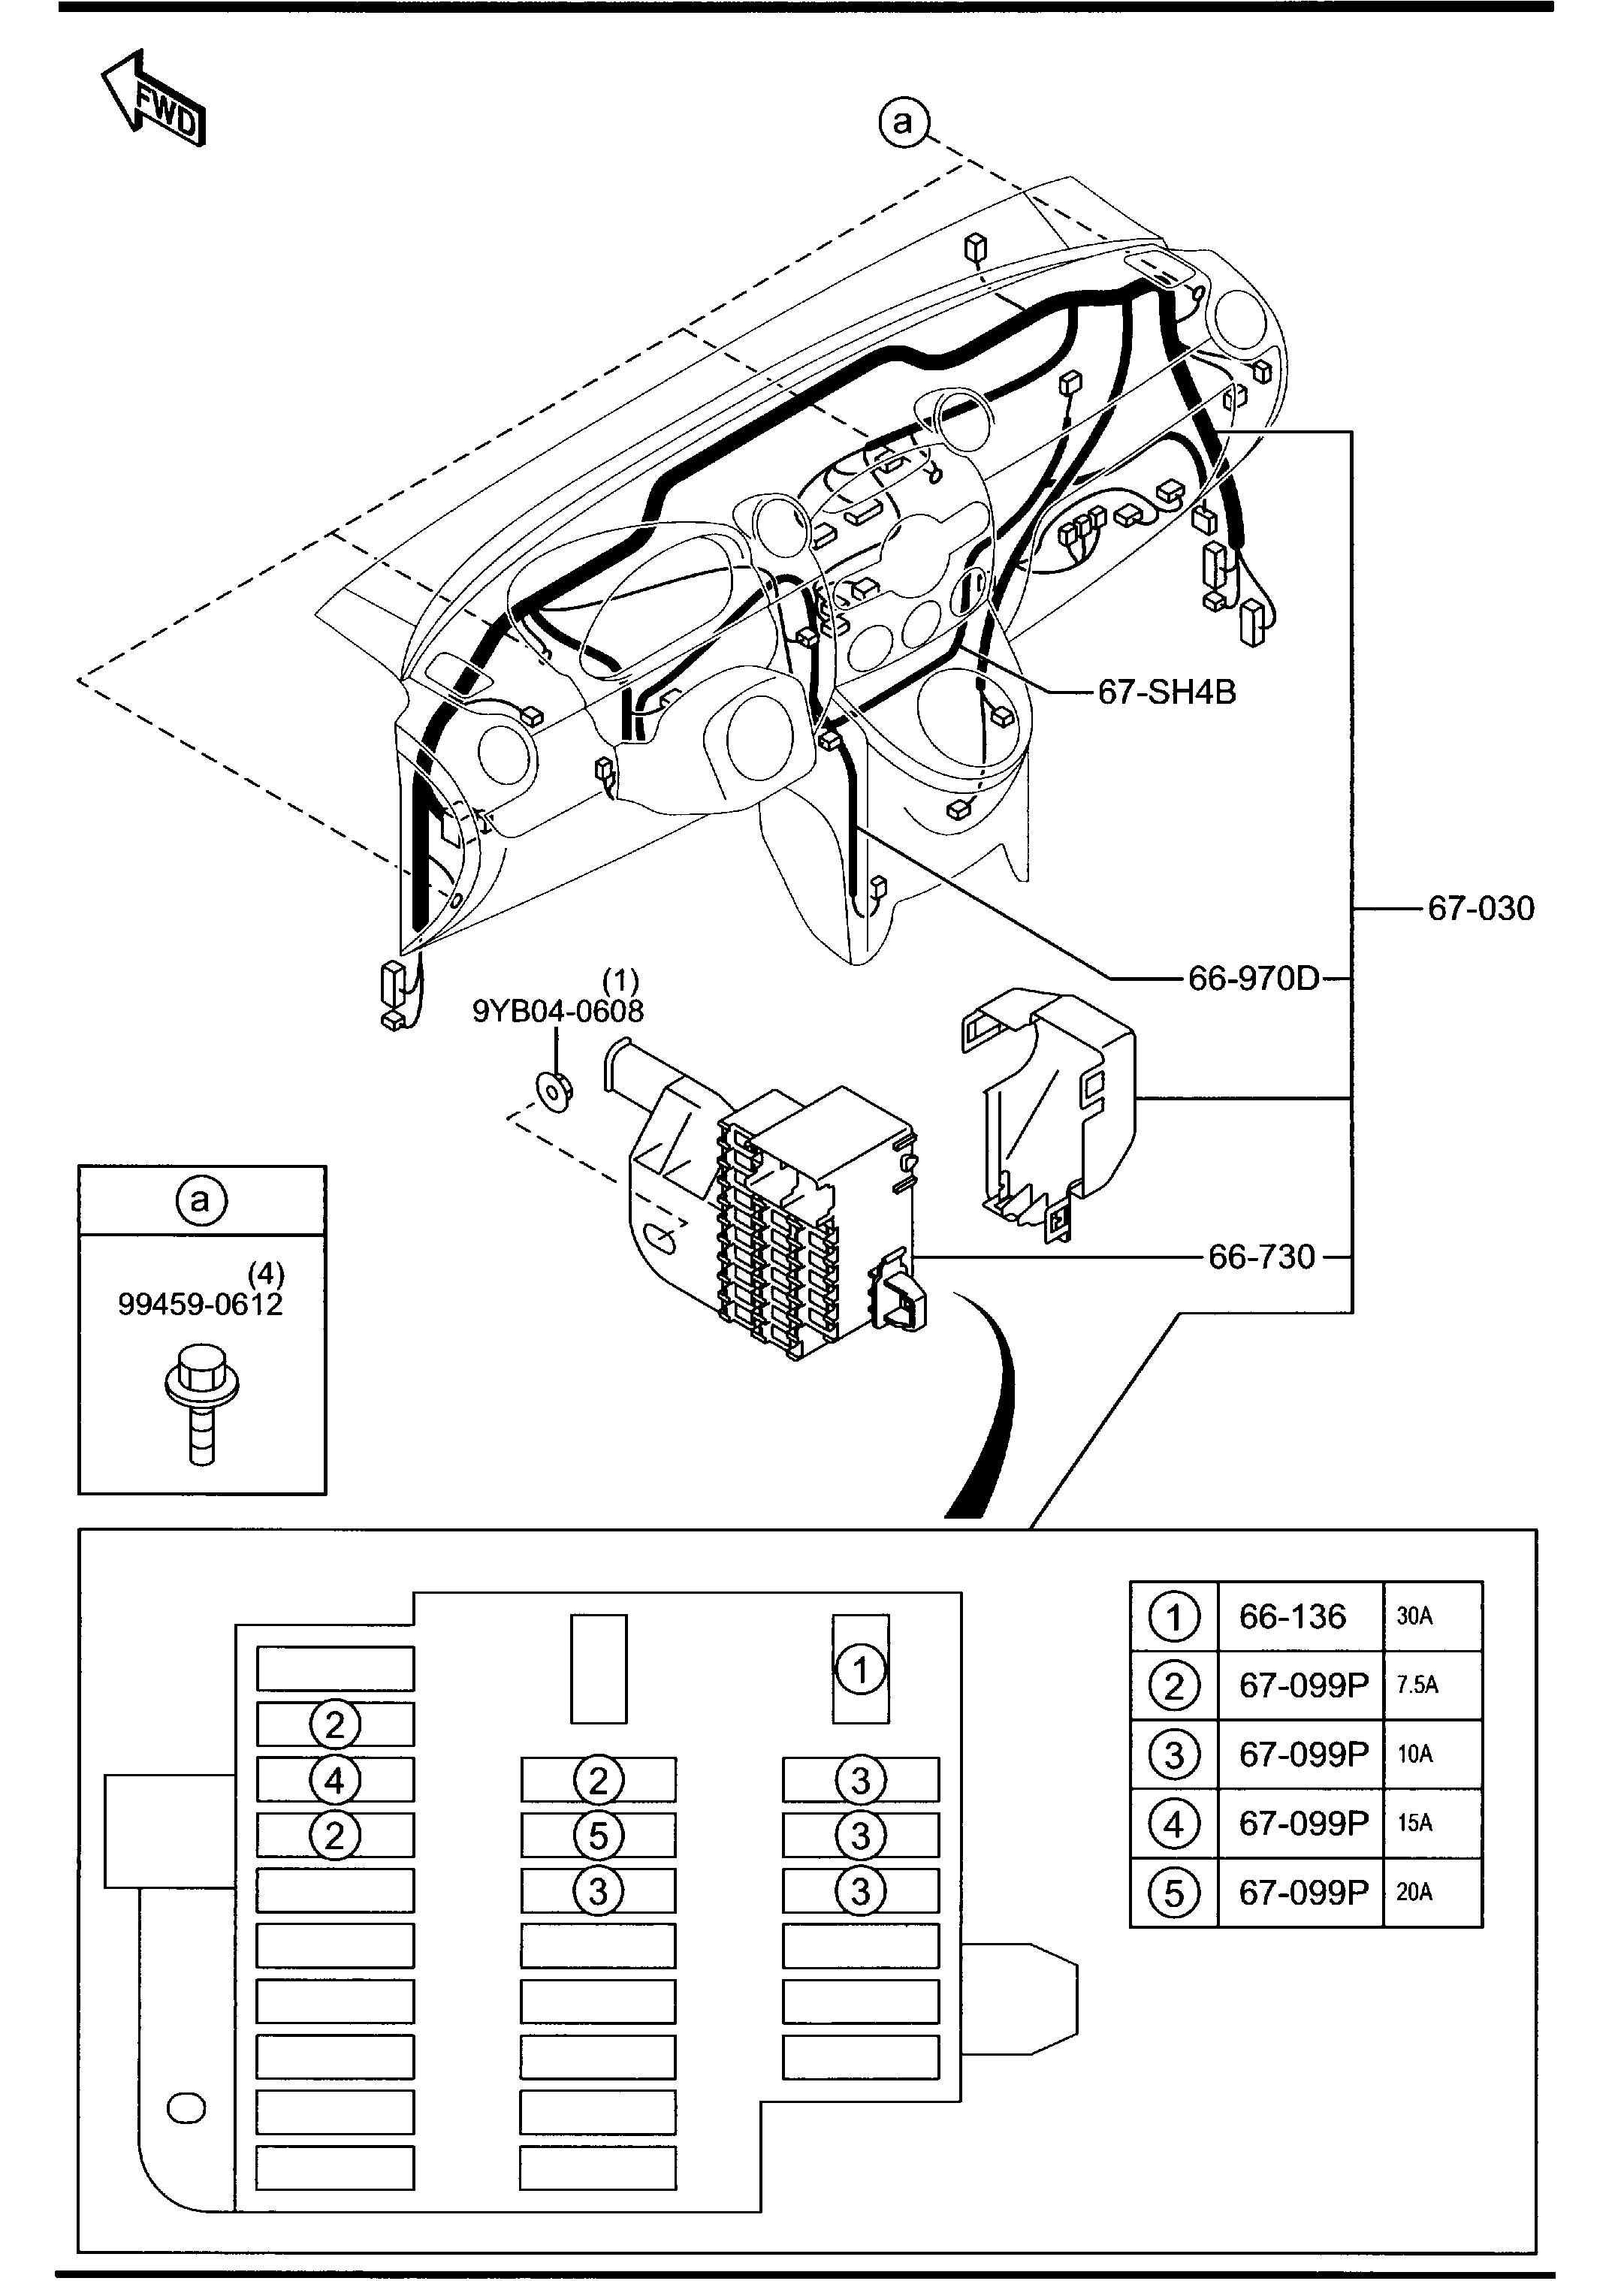 2004 ford f150 engine diagram guitar 5 way switch wiring diagrams 2003 ranger door panel parts html